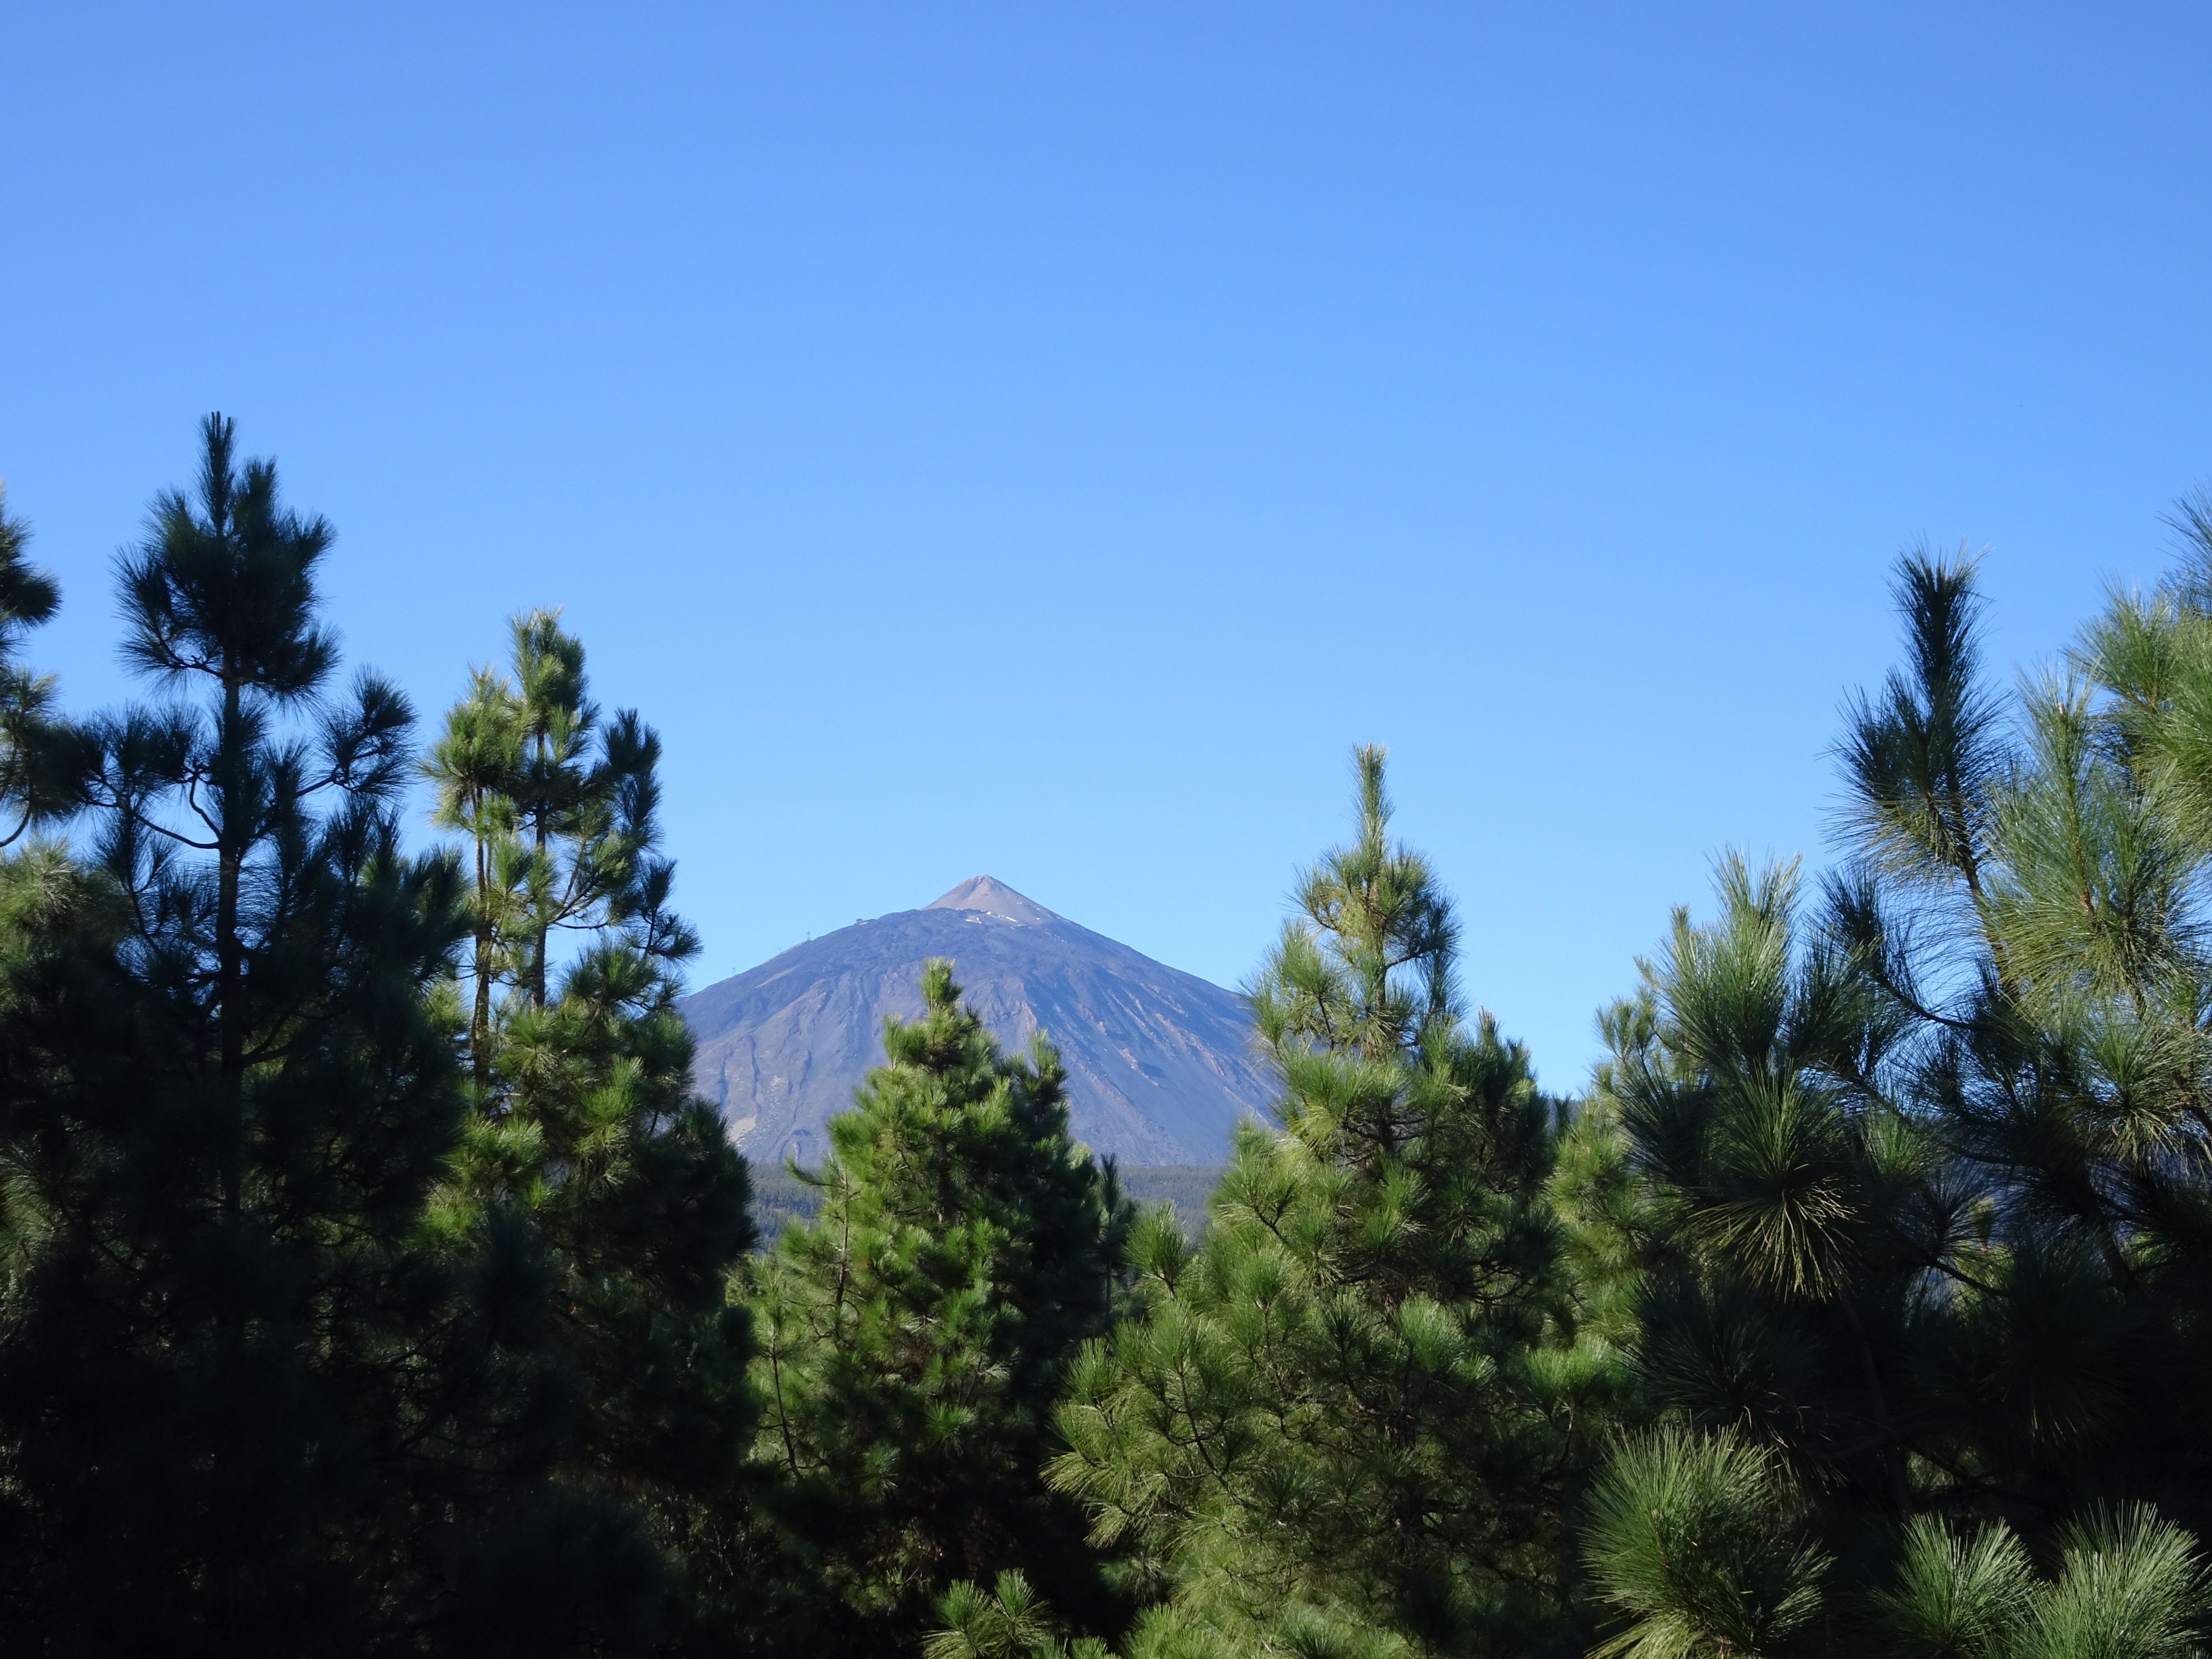 View of Teide from a distance